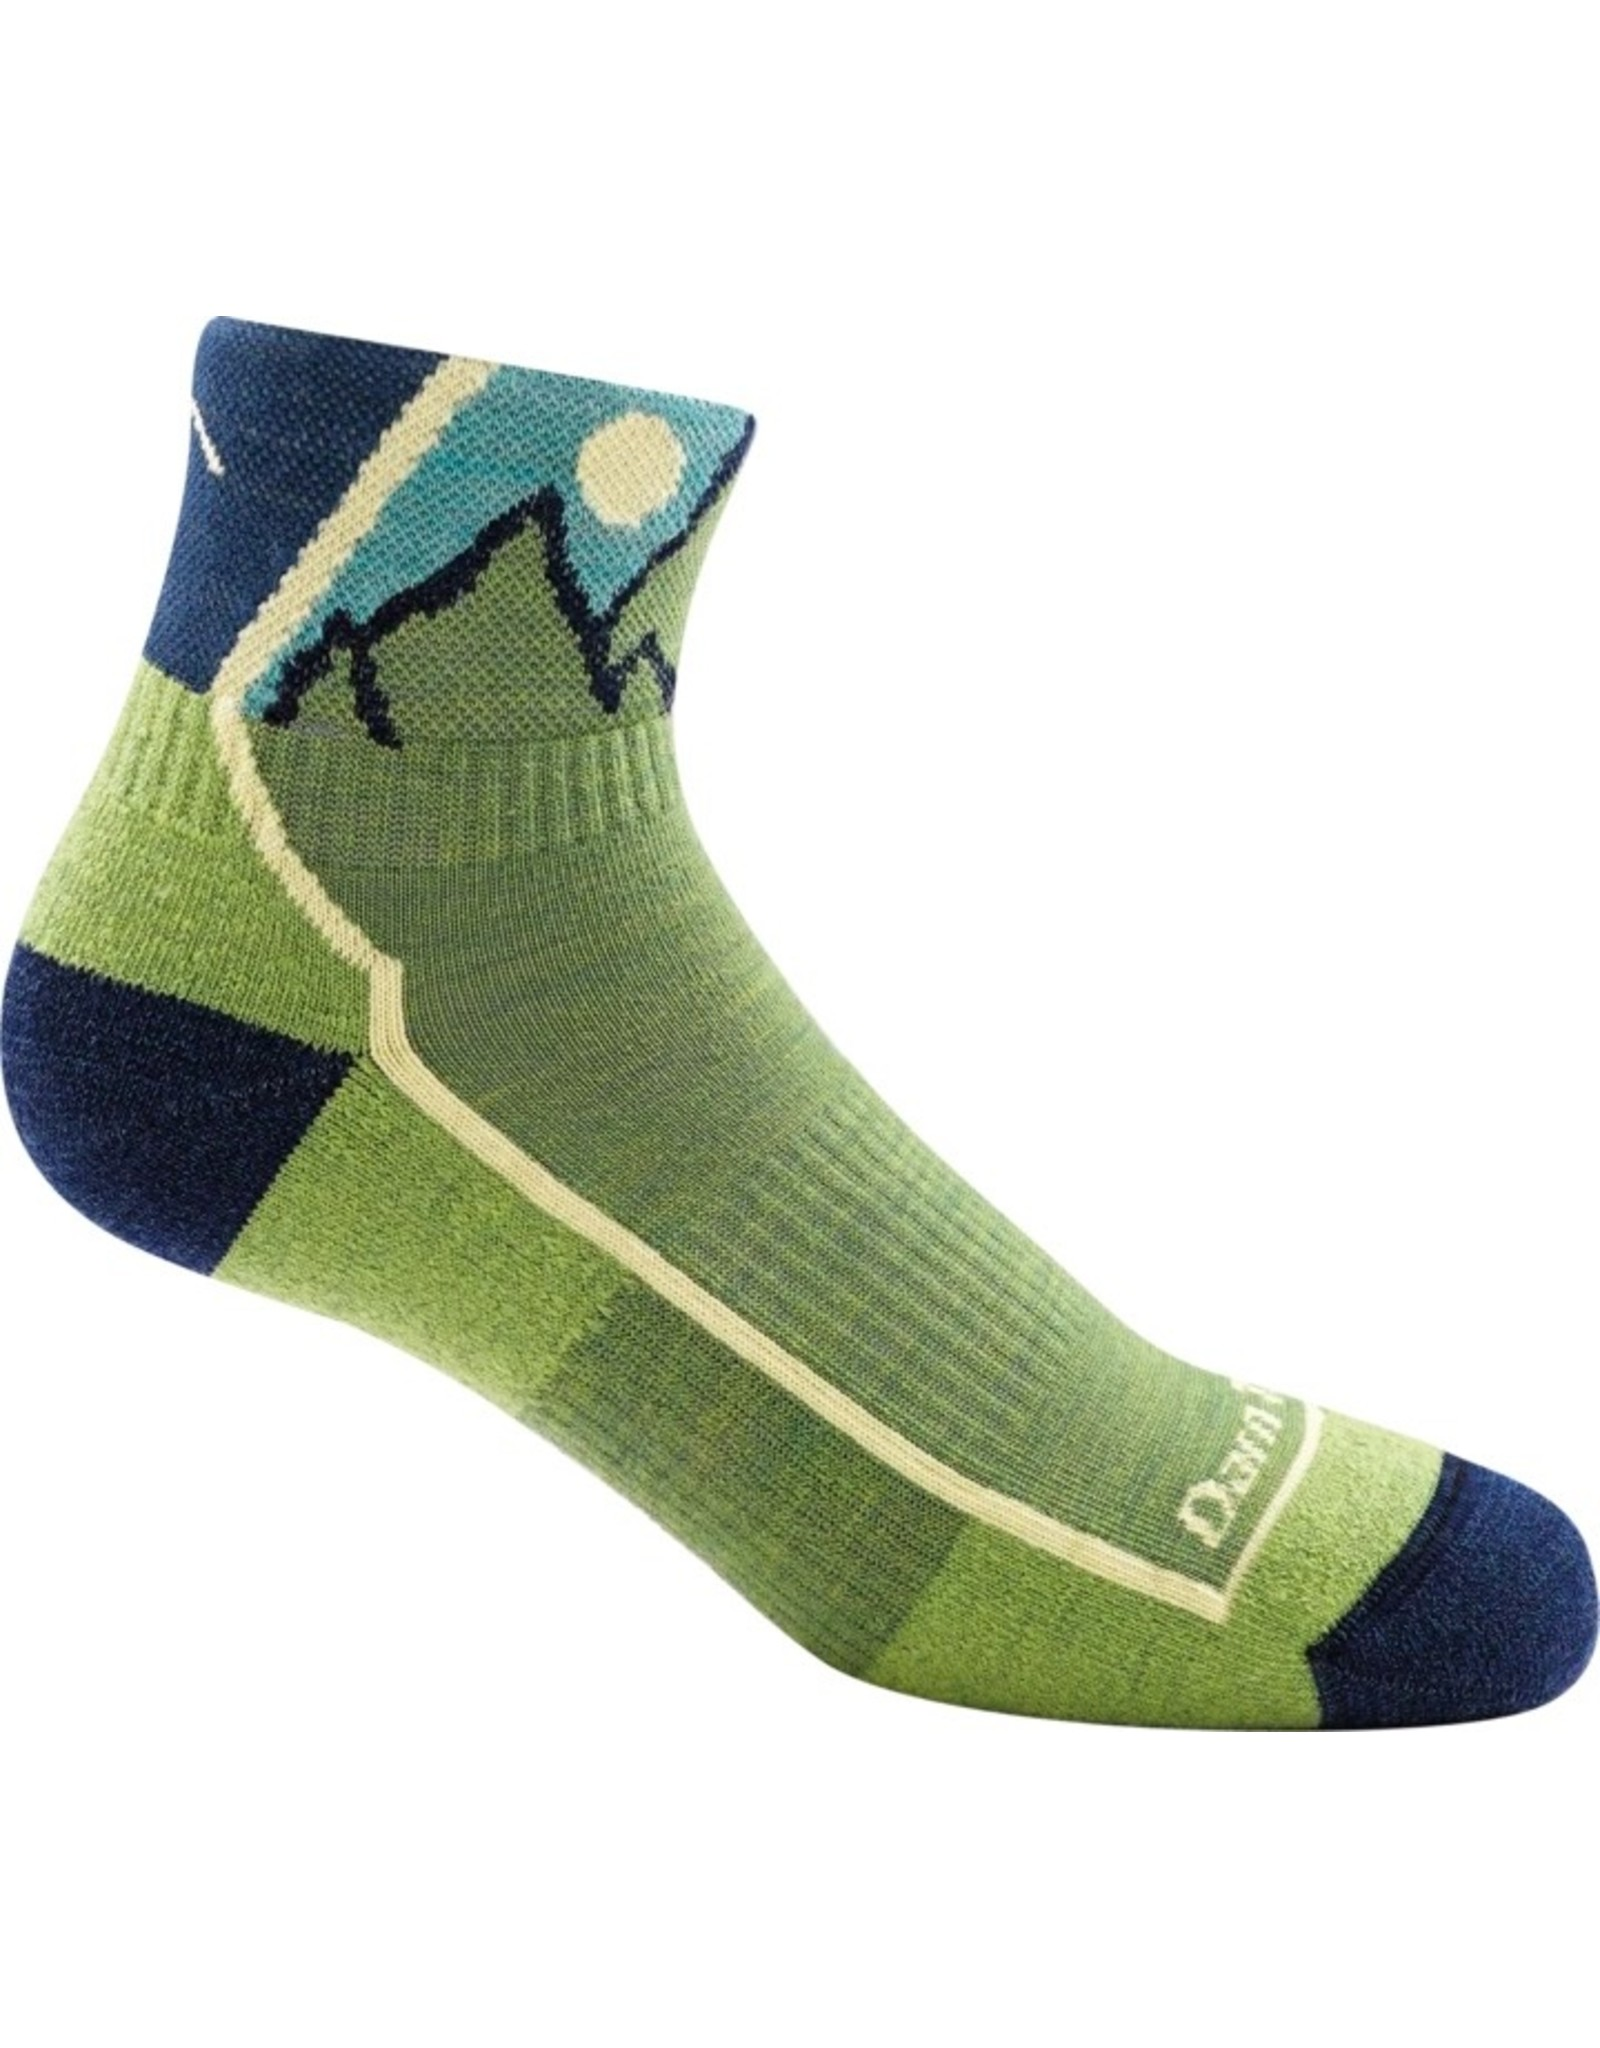 Darn Tough Darn Tough JR 3016 Hiker 1/4 Sock Lightweight Cushion